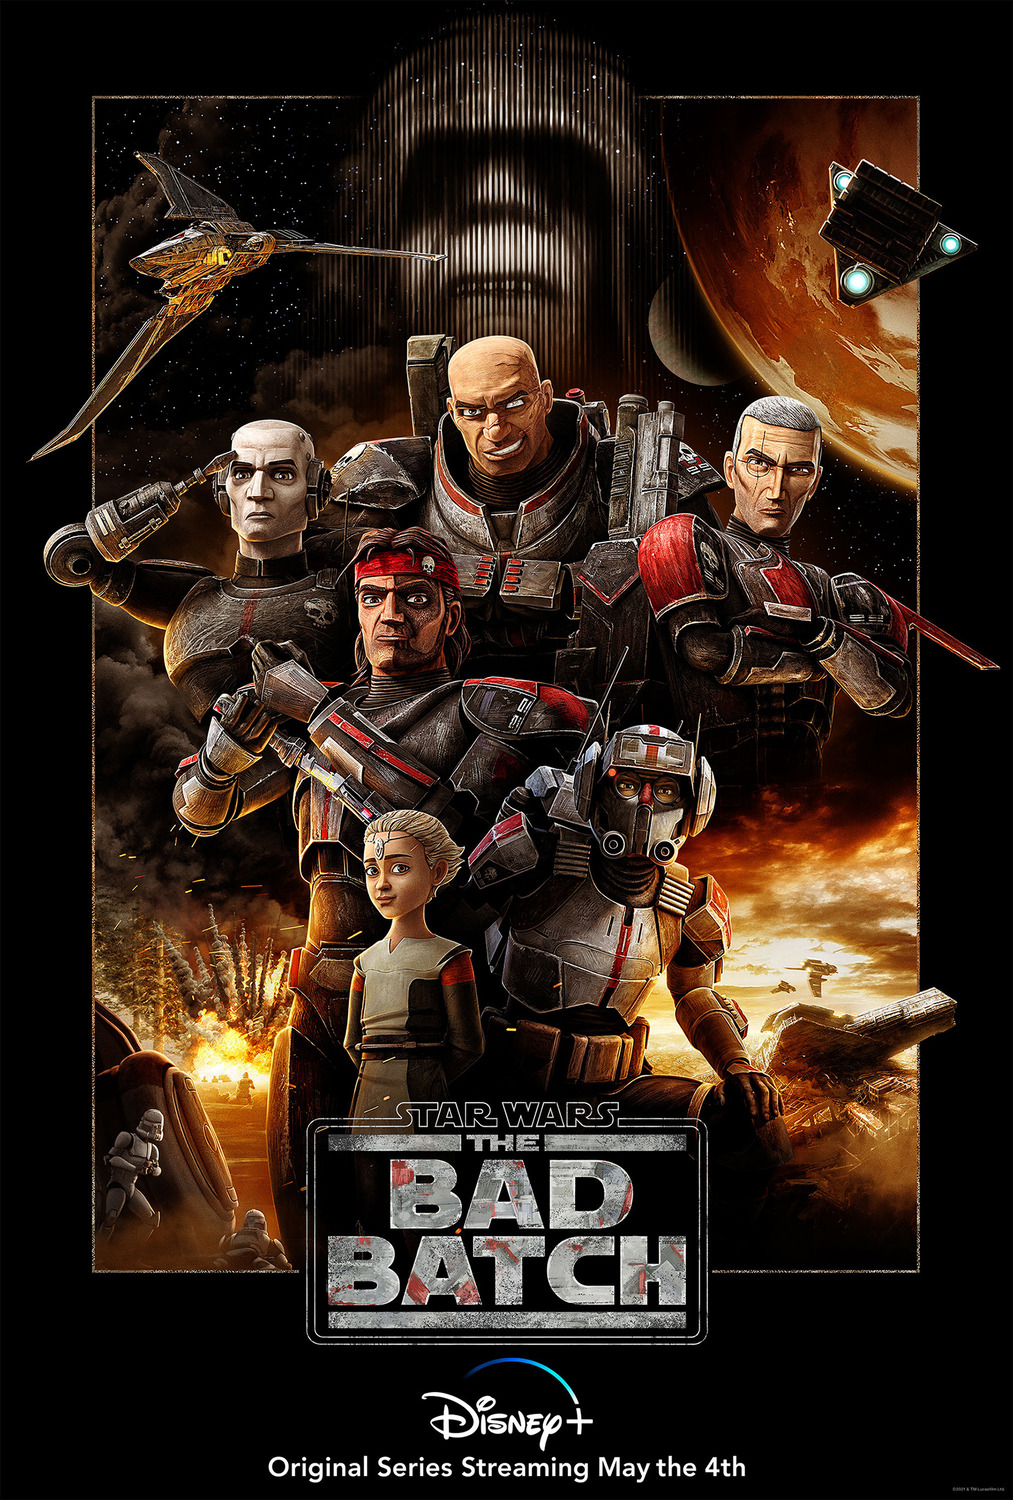 Star Wars: The Bad Batch (TV Series 2021– ) - IMDb